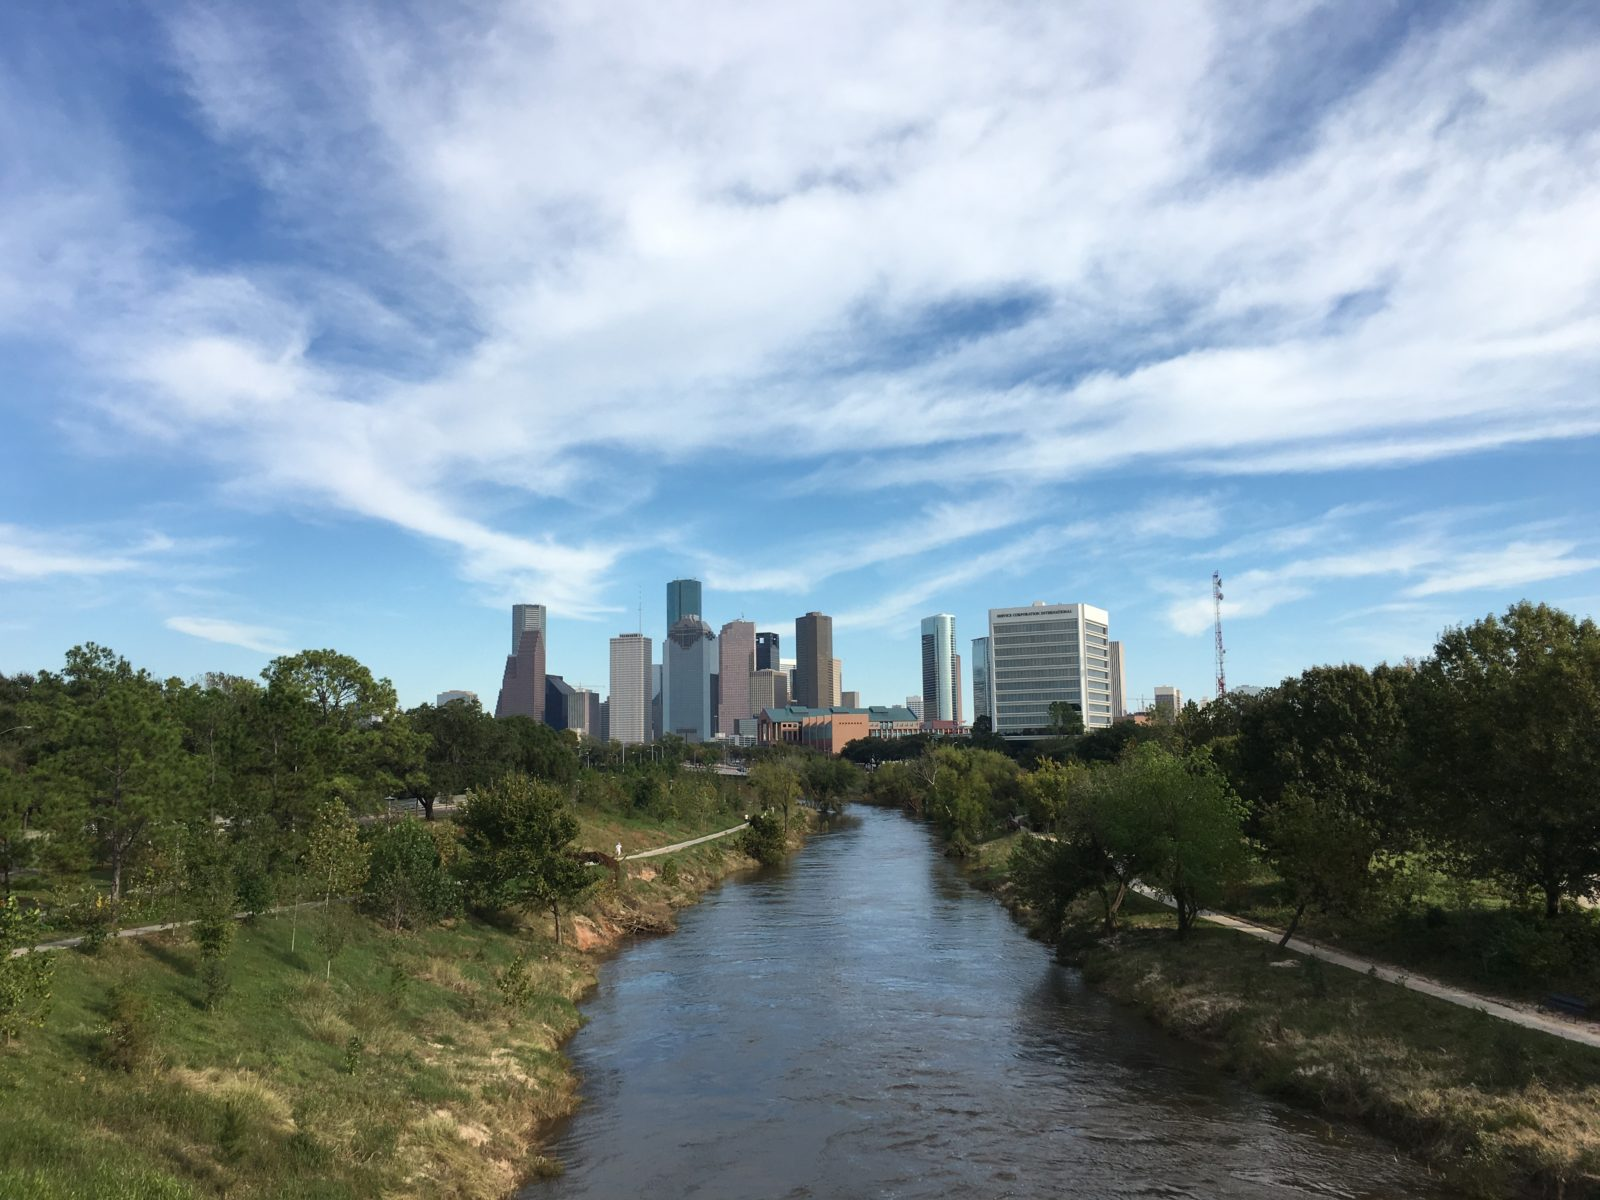 Houston water rate increases needed, but must be equitable and transparent